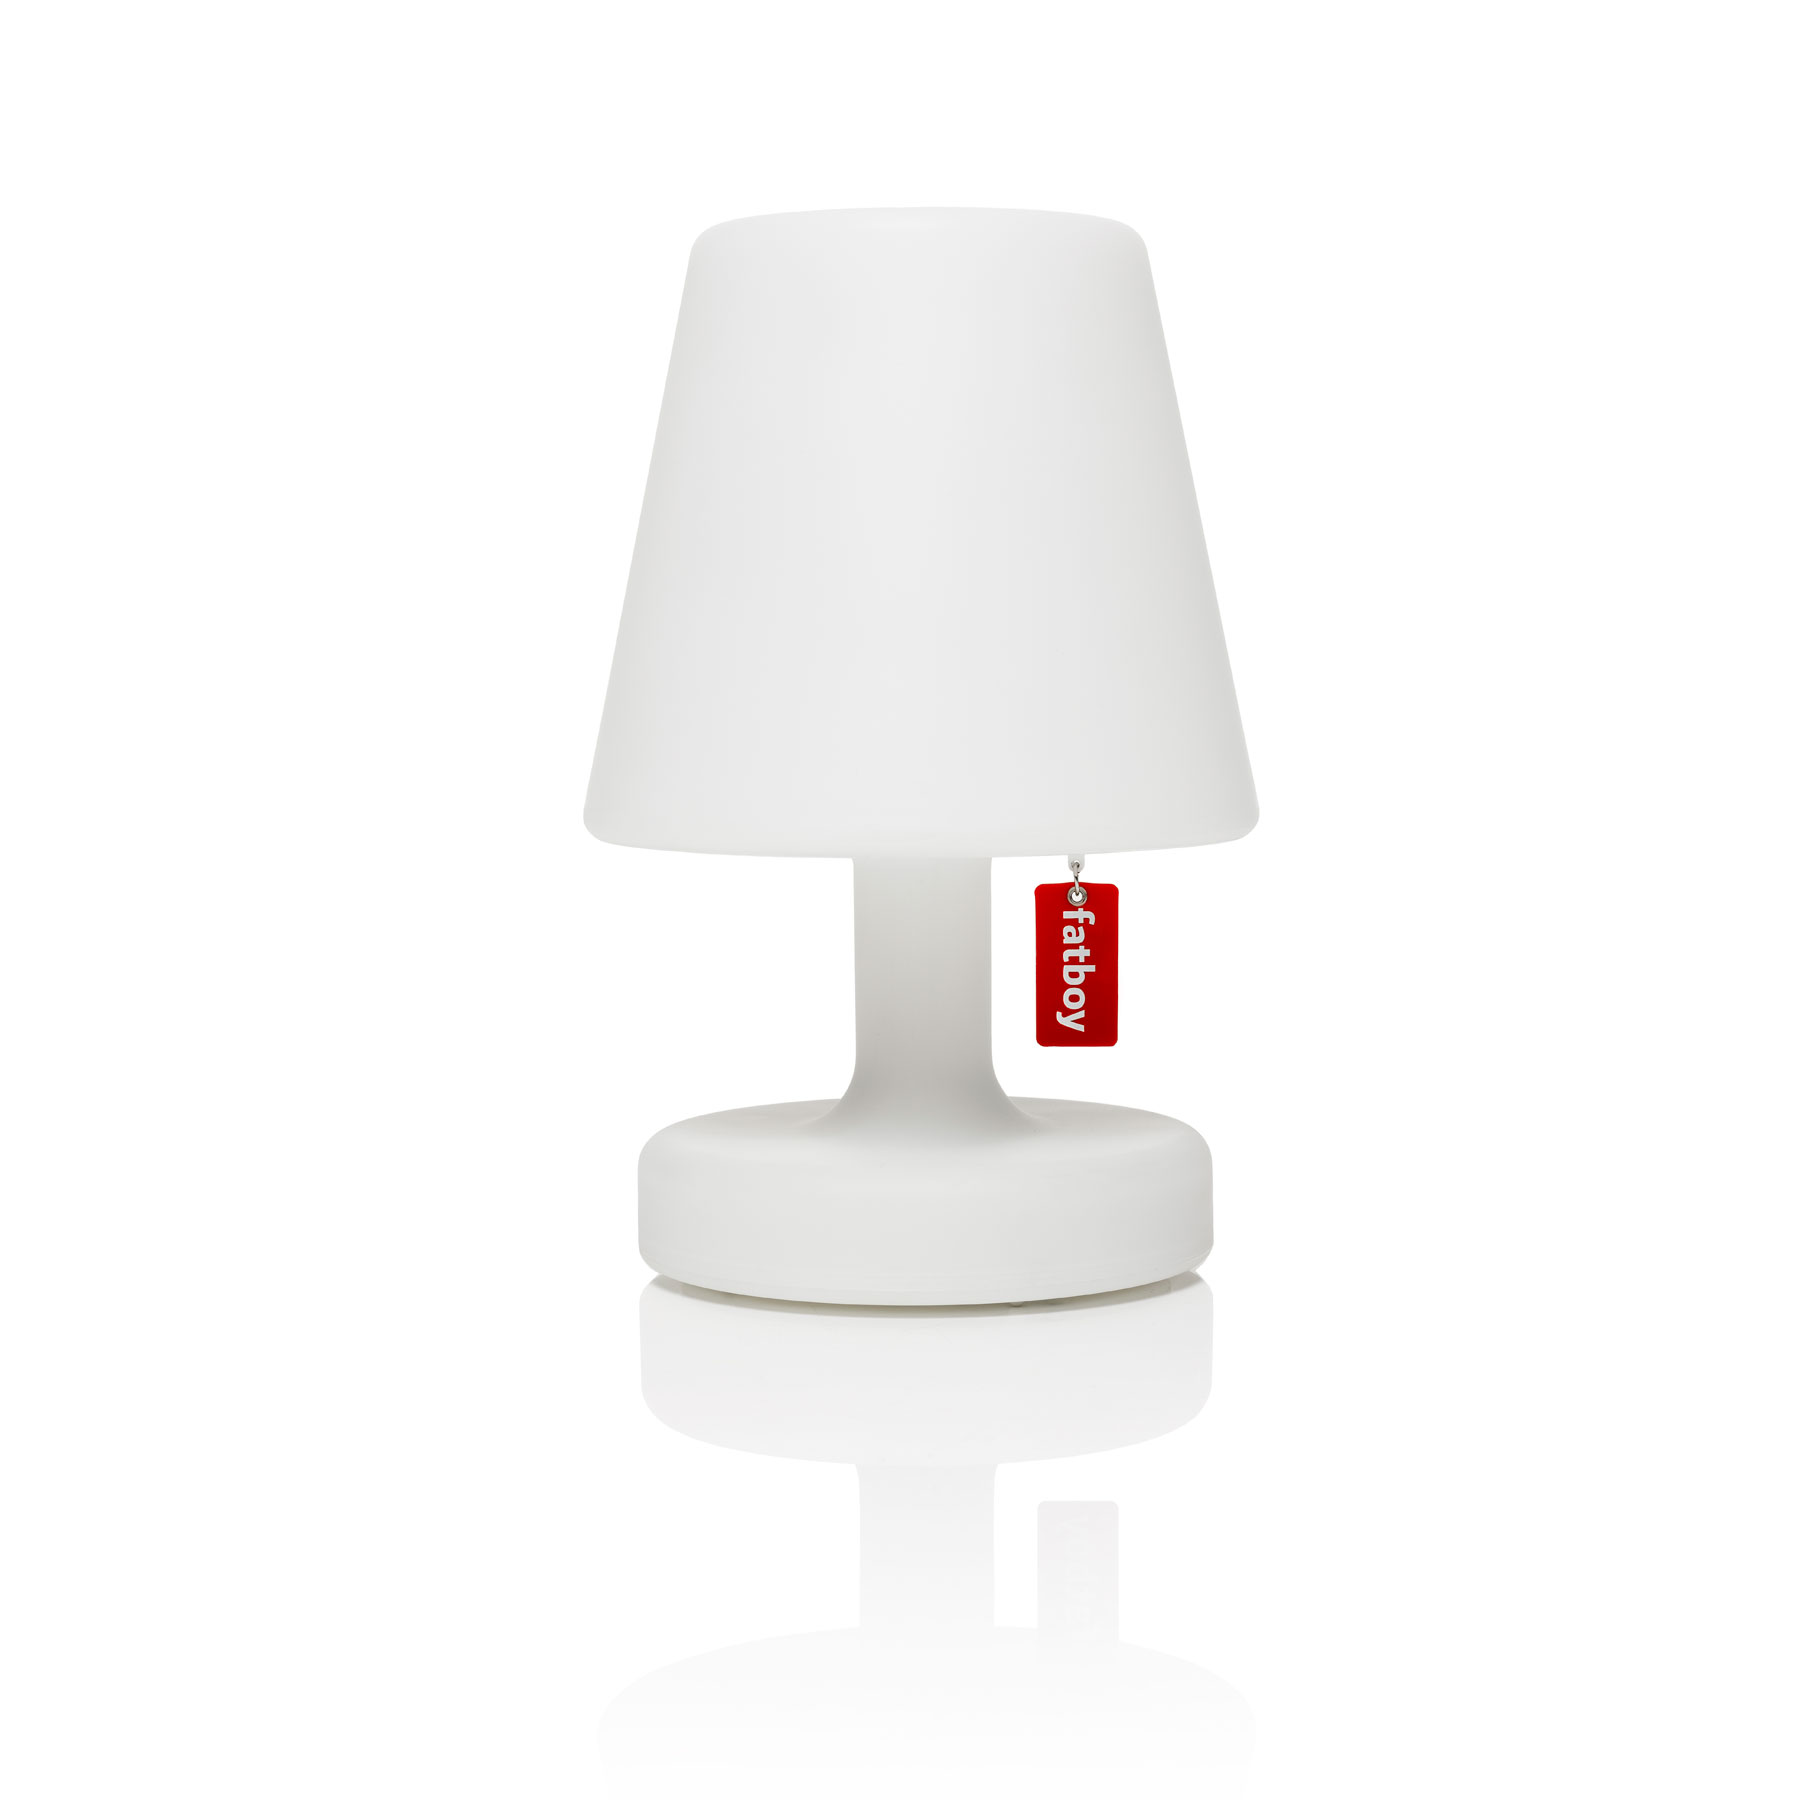 Tischleuchte Batterie Edison The Petit Cordless Led Table Lamp By Fatboy Usa